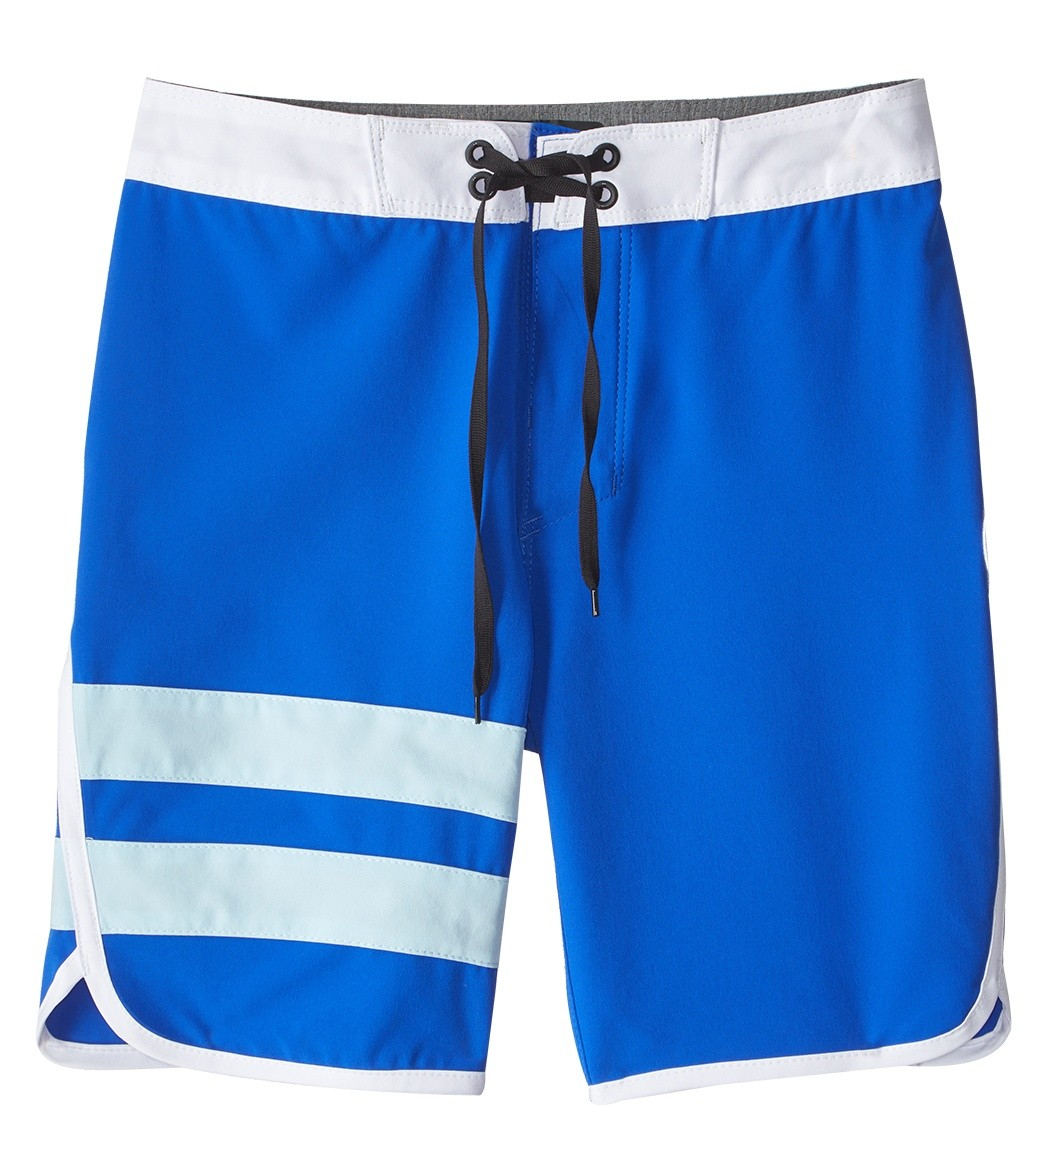 7a93514a9c Hurley Boys' Phantom 30 Solid Block Party Boardshort (8-20) at  SwimOutlet.com - Free Shipping